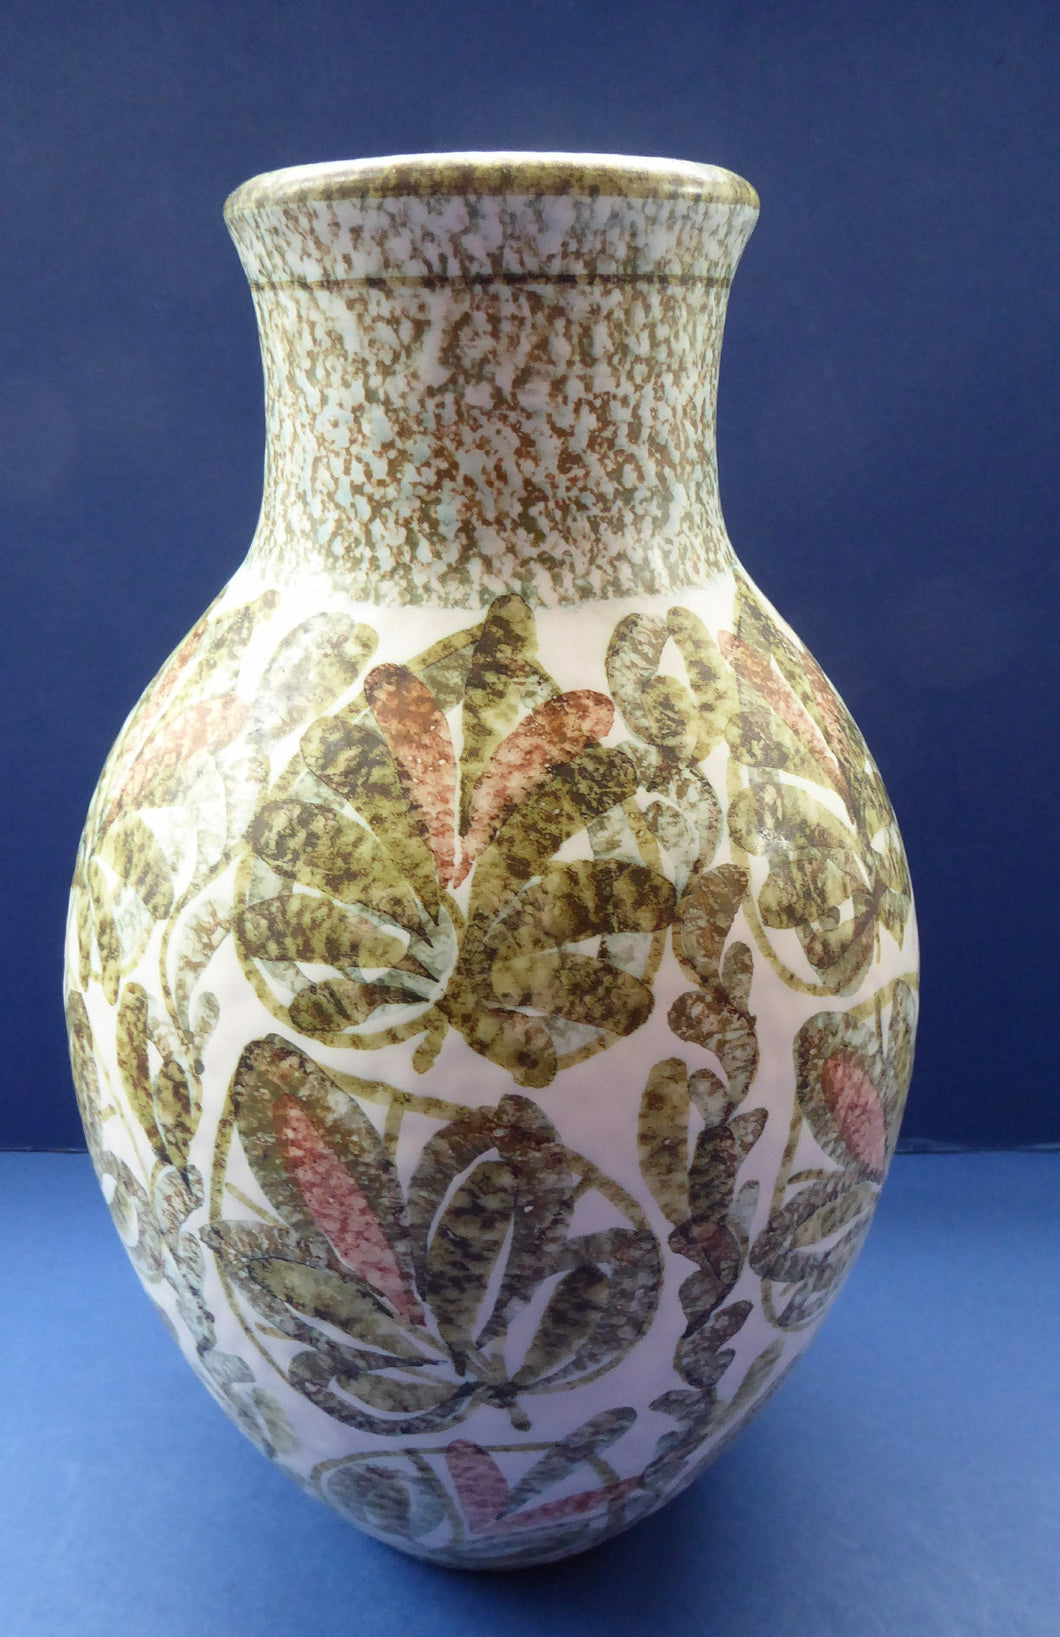 Vintage 1950s DENBY Glyn Colledge GLYNDBOURNE Vase. Hand Painted. 11 inches